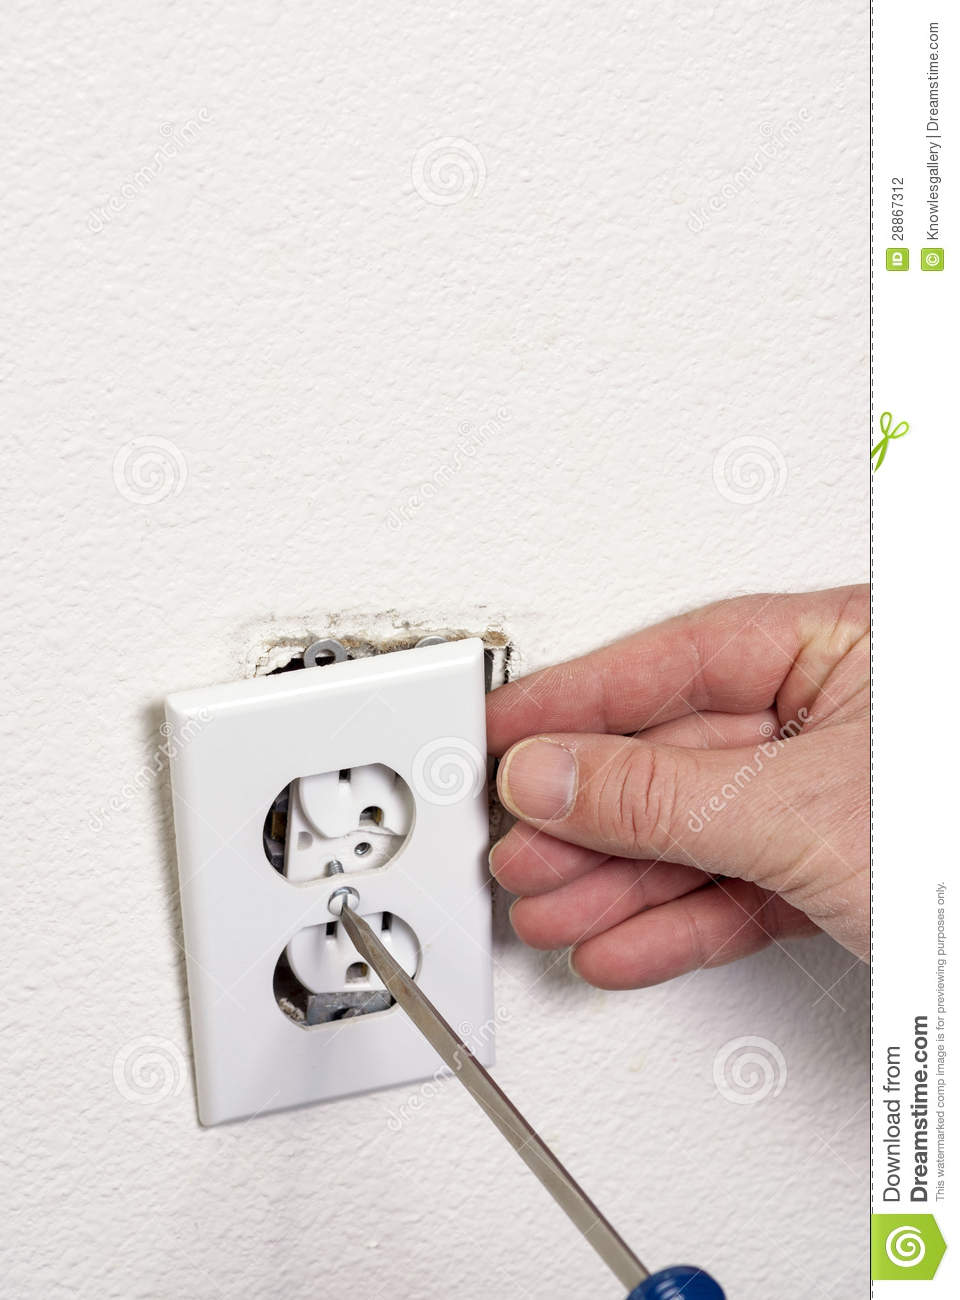 Electrical Out Remove The Face Plate Stock Photo Image Of Plug